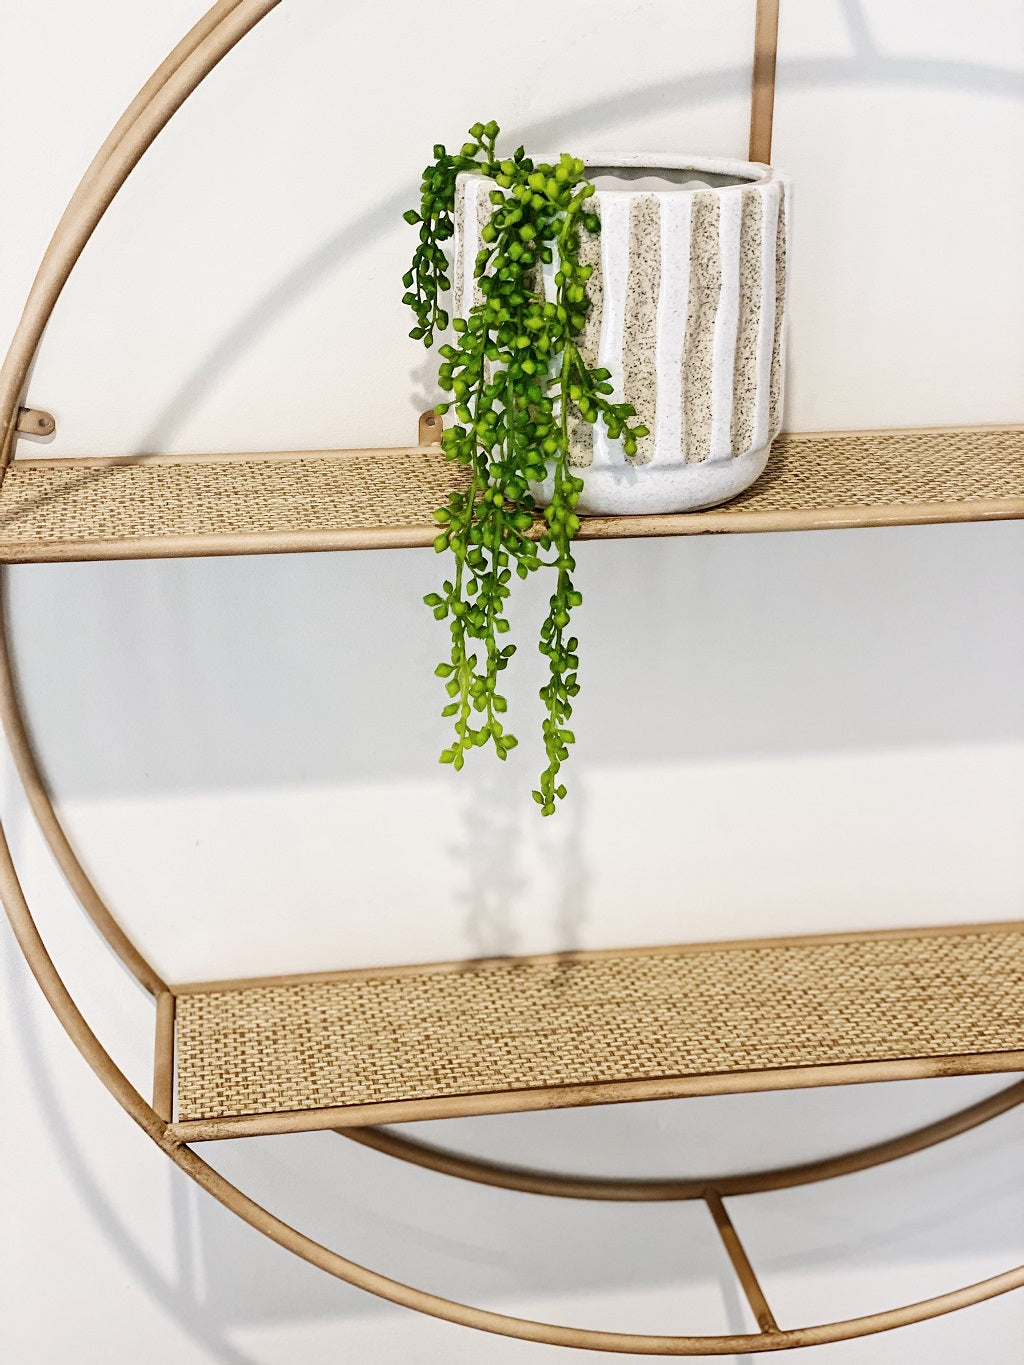 Our stunning Cassidy Round Cane-Look Floating Wall Shelves is the statement piece you just can't help but fall in love with, intricate detail to a gorgeous aesthetic but also versatile as you can restyle to suit your changing decor. 80x15cm. Shop Online & In-store. AfterPay Available. Australia Wide Shipping | Bliss Gifts & Homewares | Unit 8, 259 Princes Hwy Ulladulla | South Coast NSW | 0427795959, 44541523